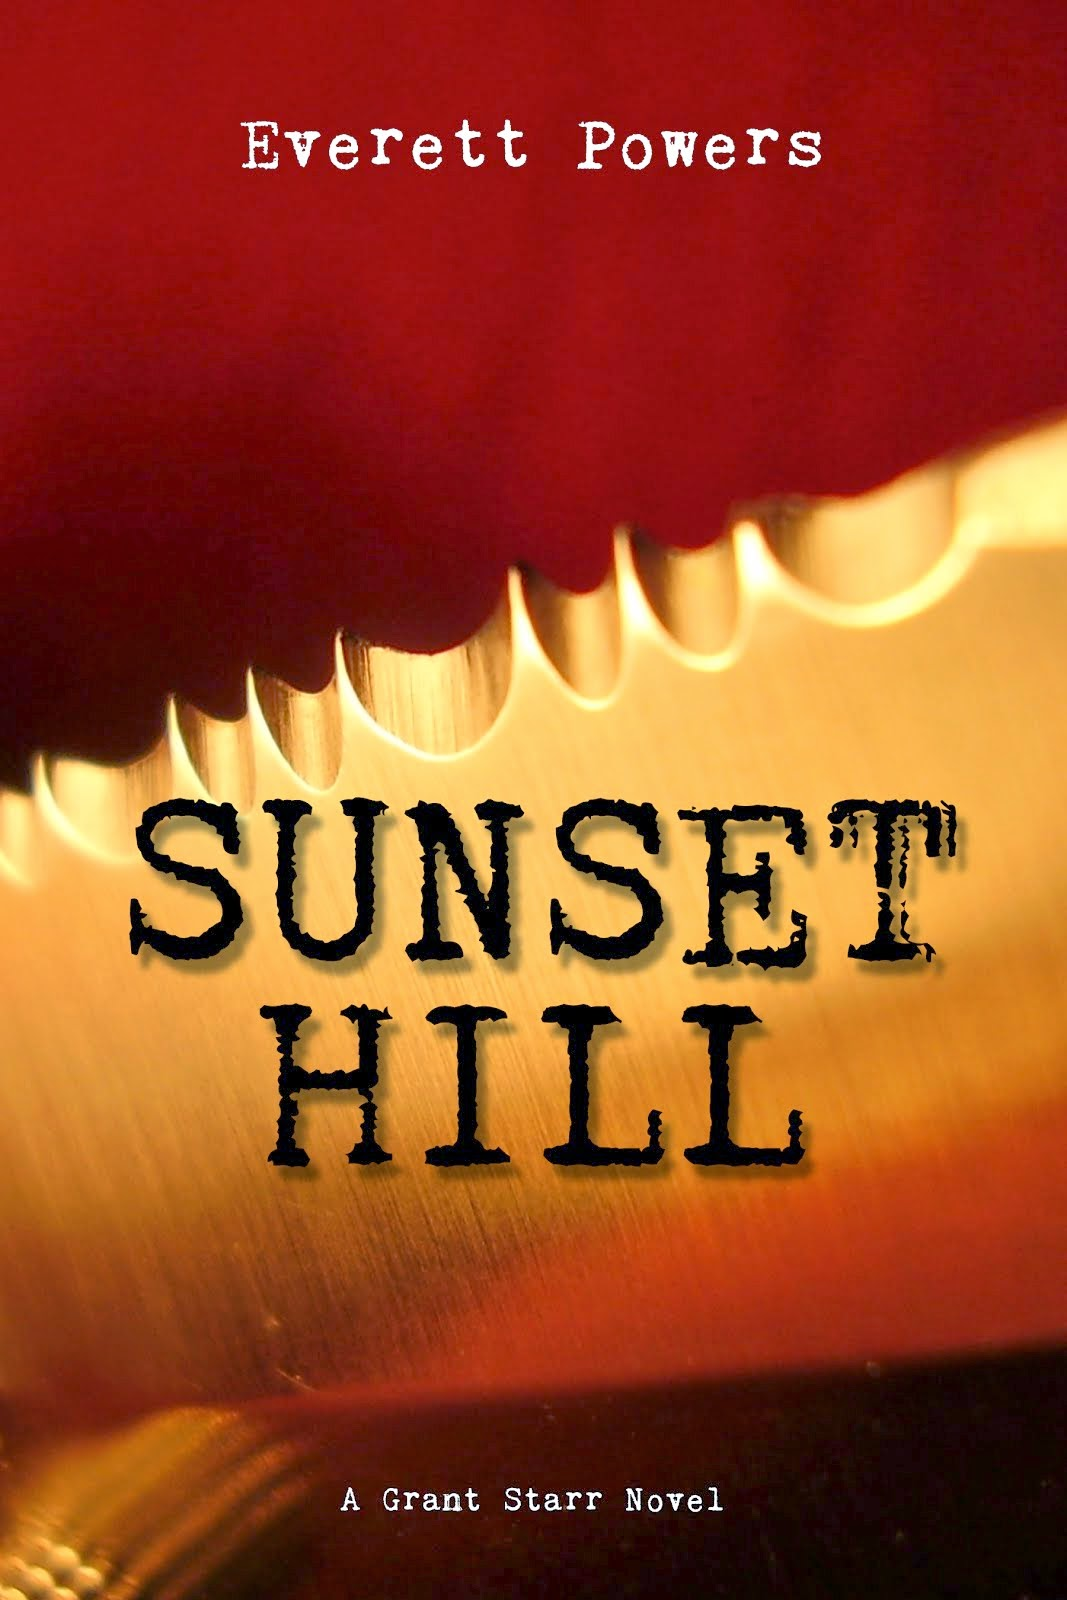 Sunset Hill